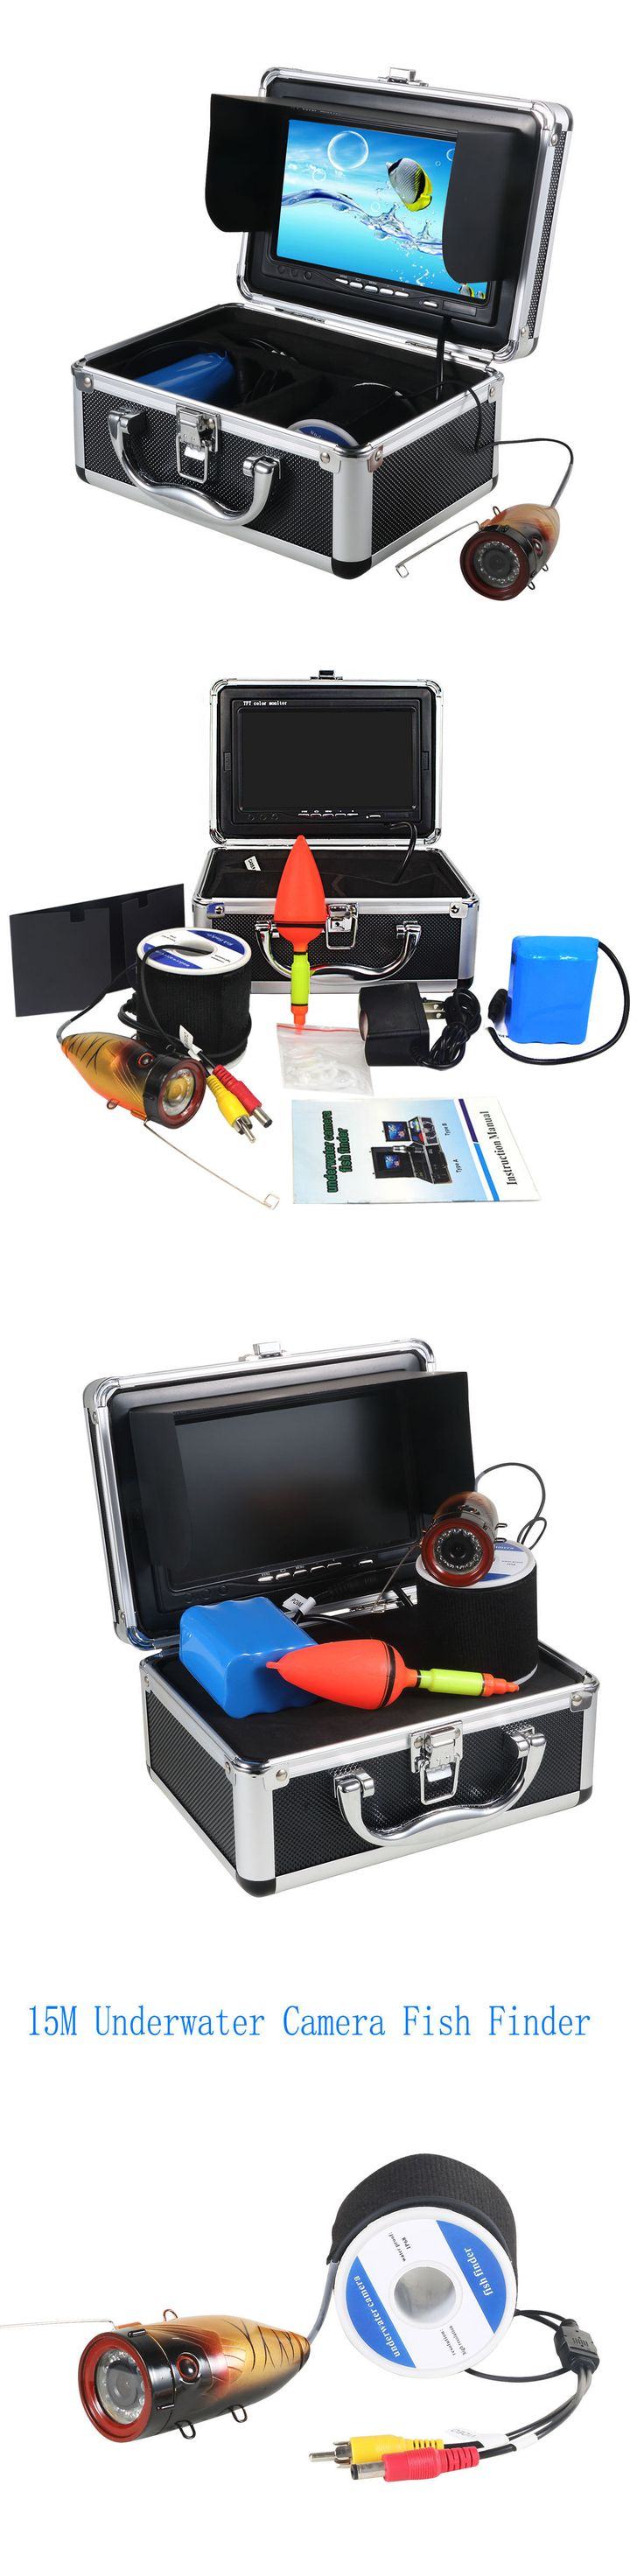 Underwater Cameras 180000: New Fish Finder 7Tft Lcd Color Monitor 1000Tvl Ir Led Underwater Video Camera Y -> BUY IT NOW ONLY: $113.04 on eBay!